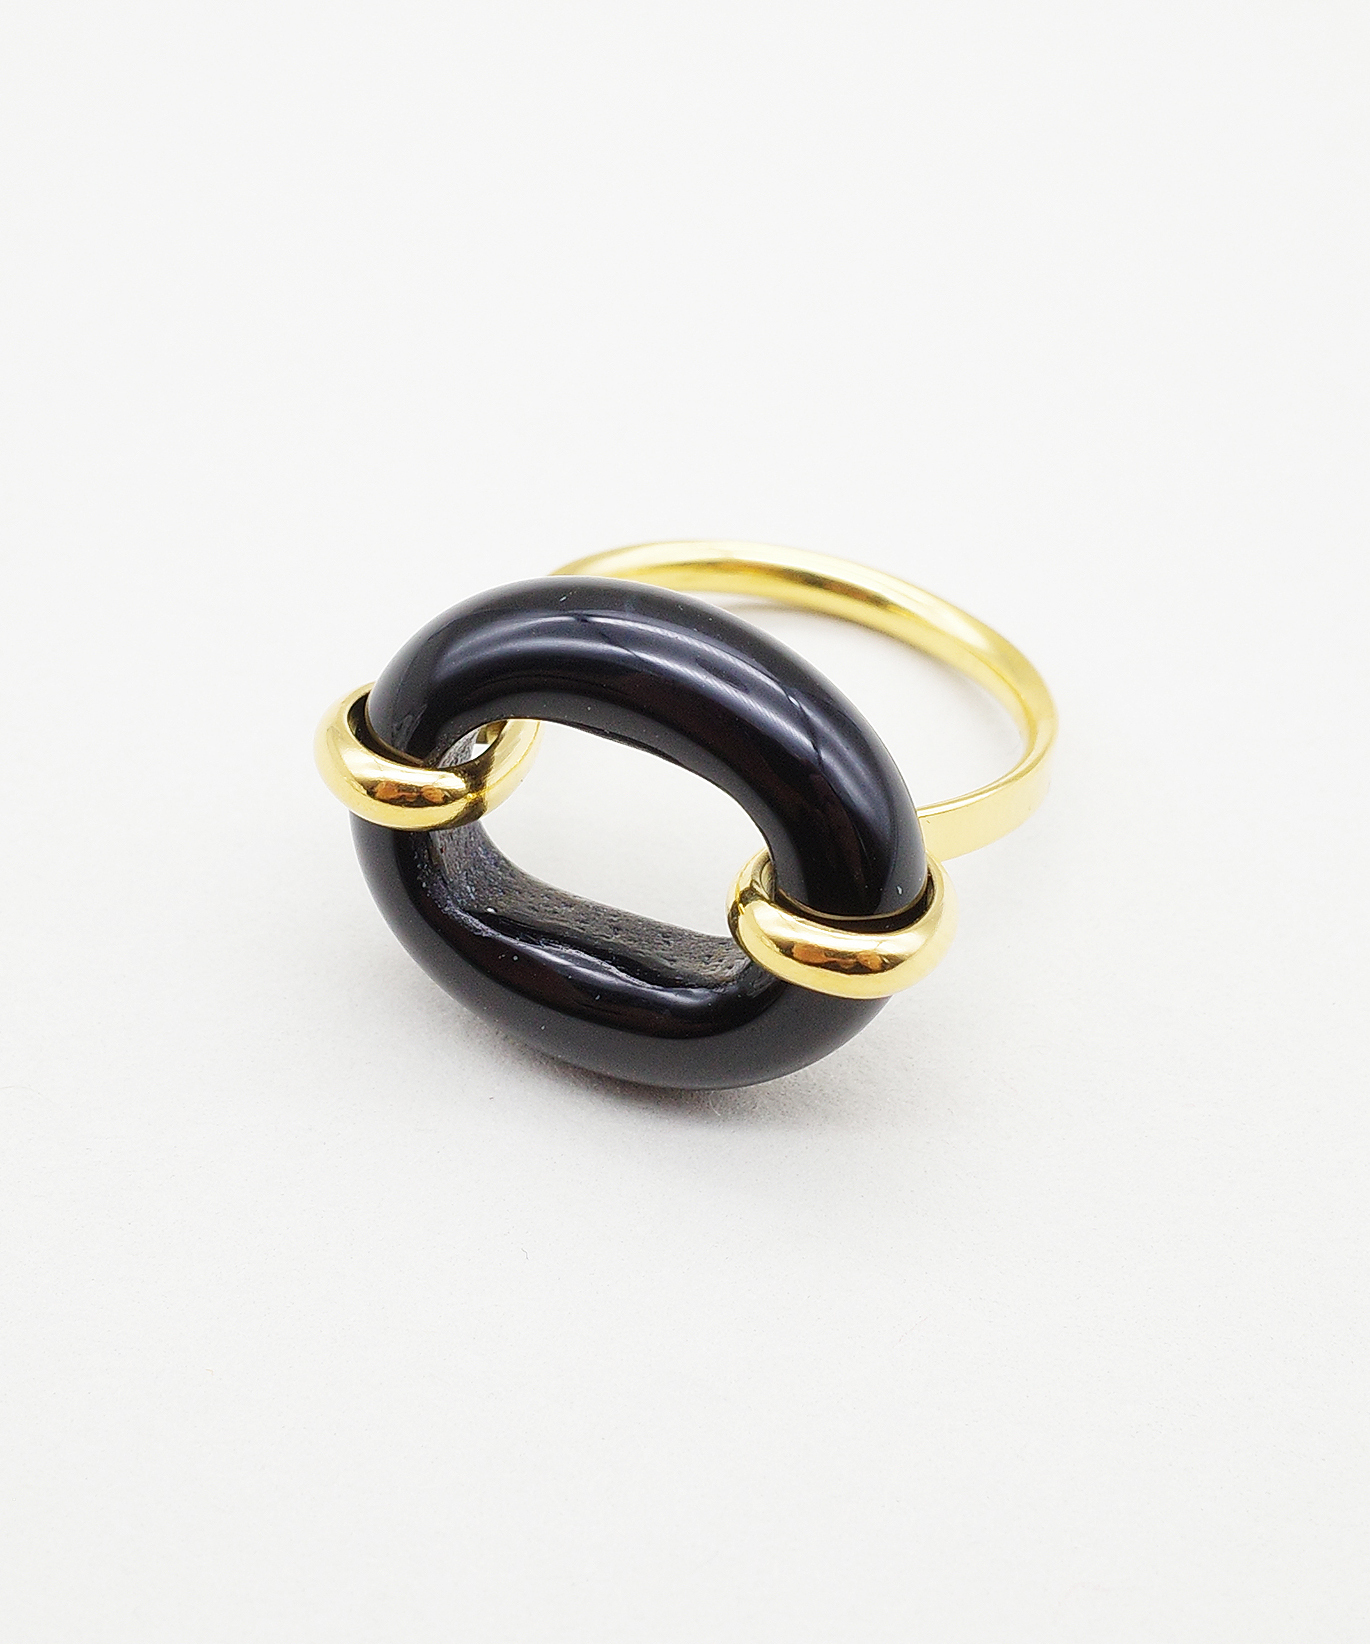 【CLED / クレッド】IN THE LOOP Ring / リング / 14K Gold Filled×Black Basalt